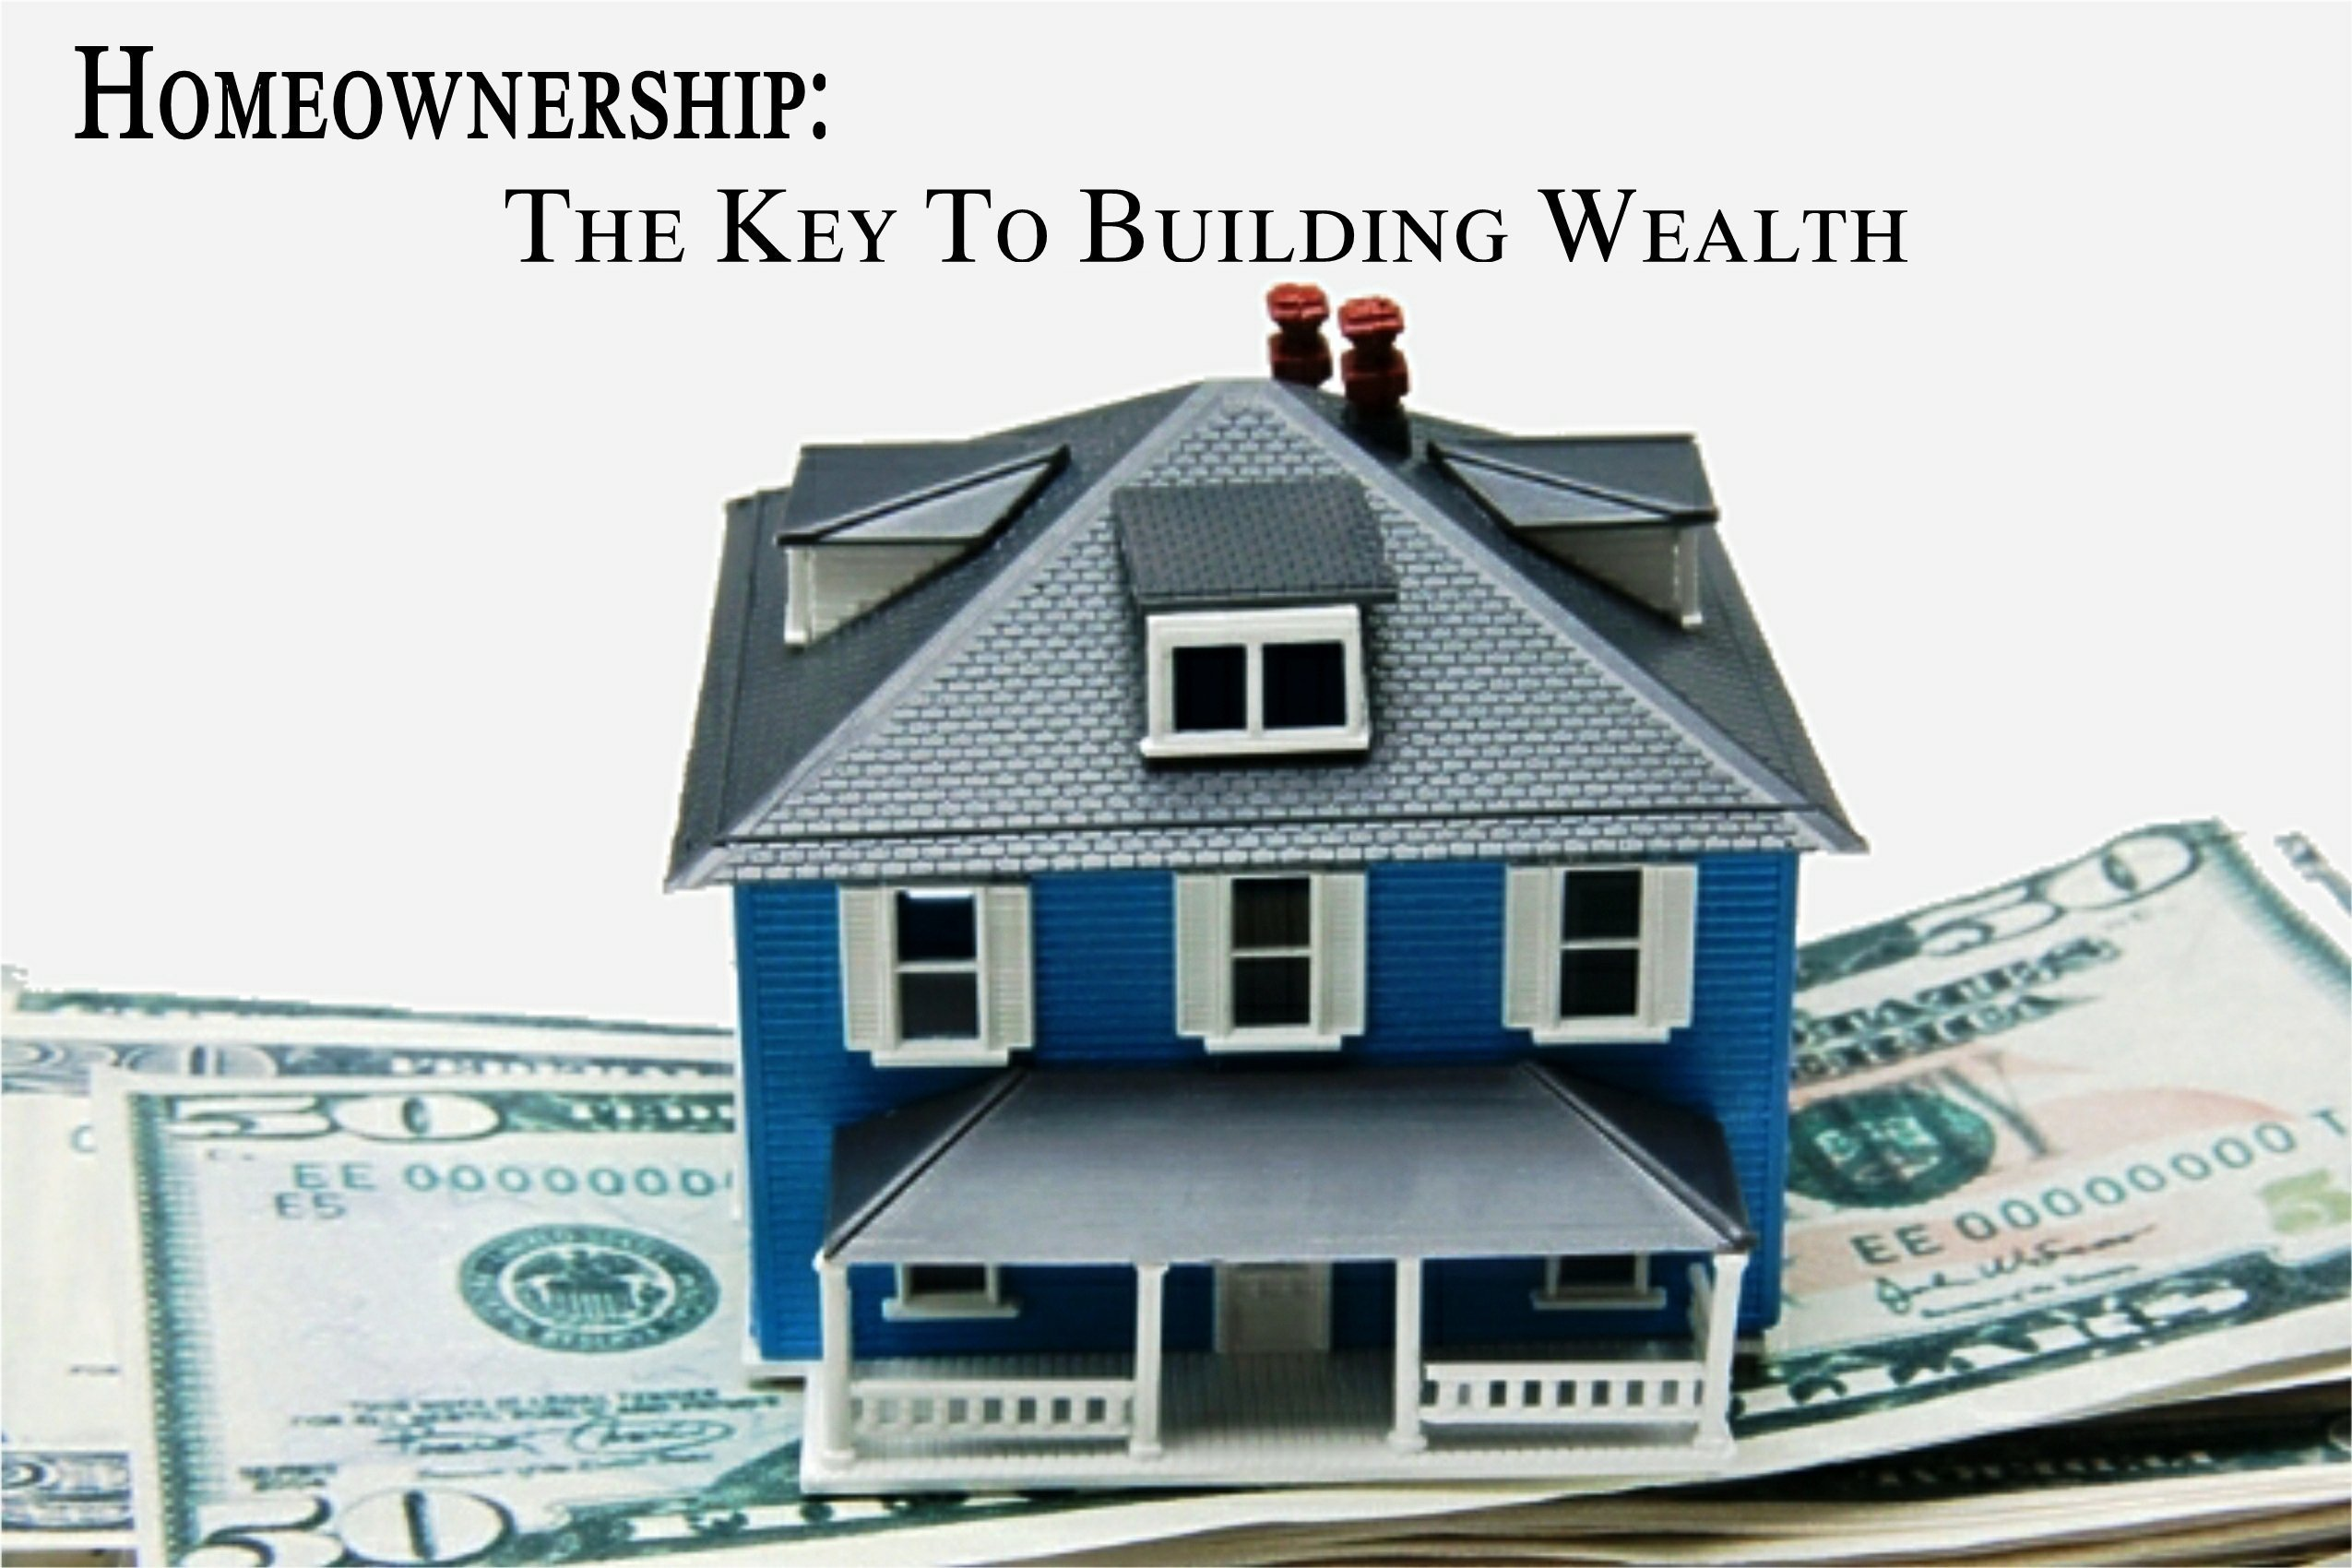 Homeownership - The Key To Building Wealth. A home sitting on top of money.